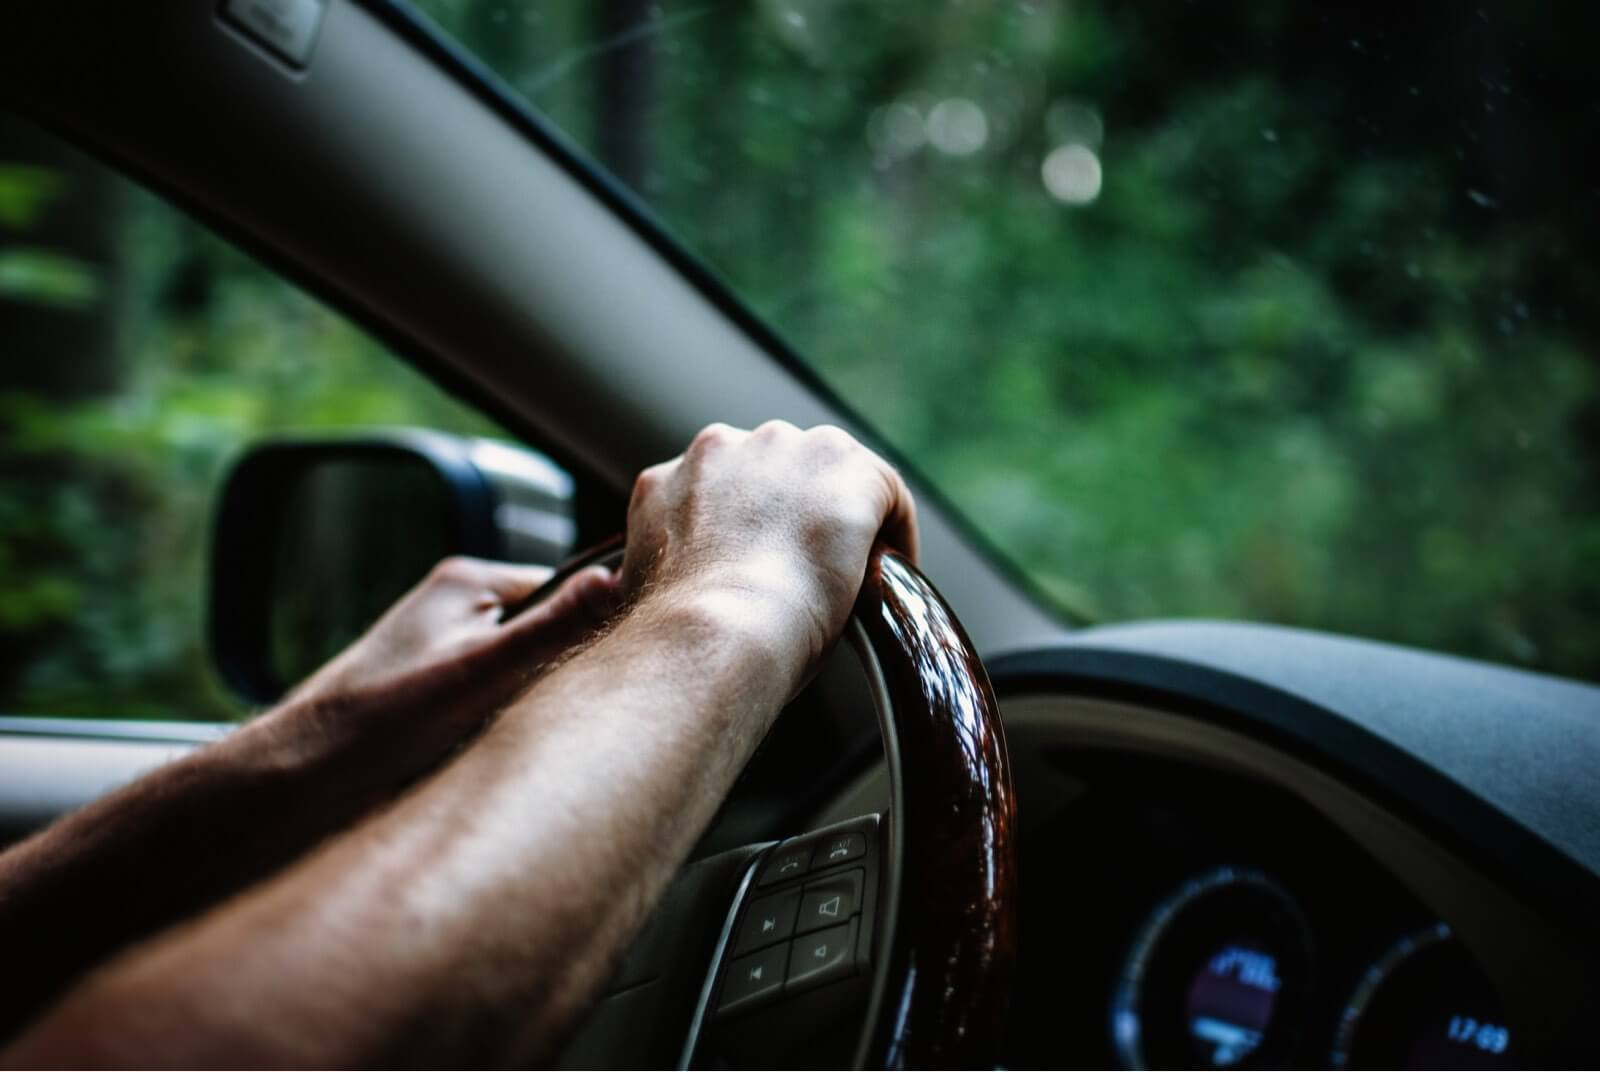 hand on steering wheel - Patterson Intellectual Property Law